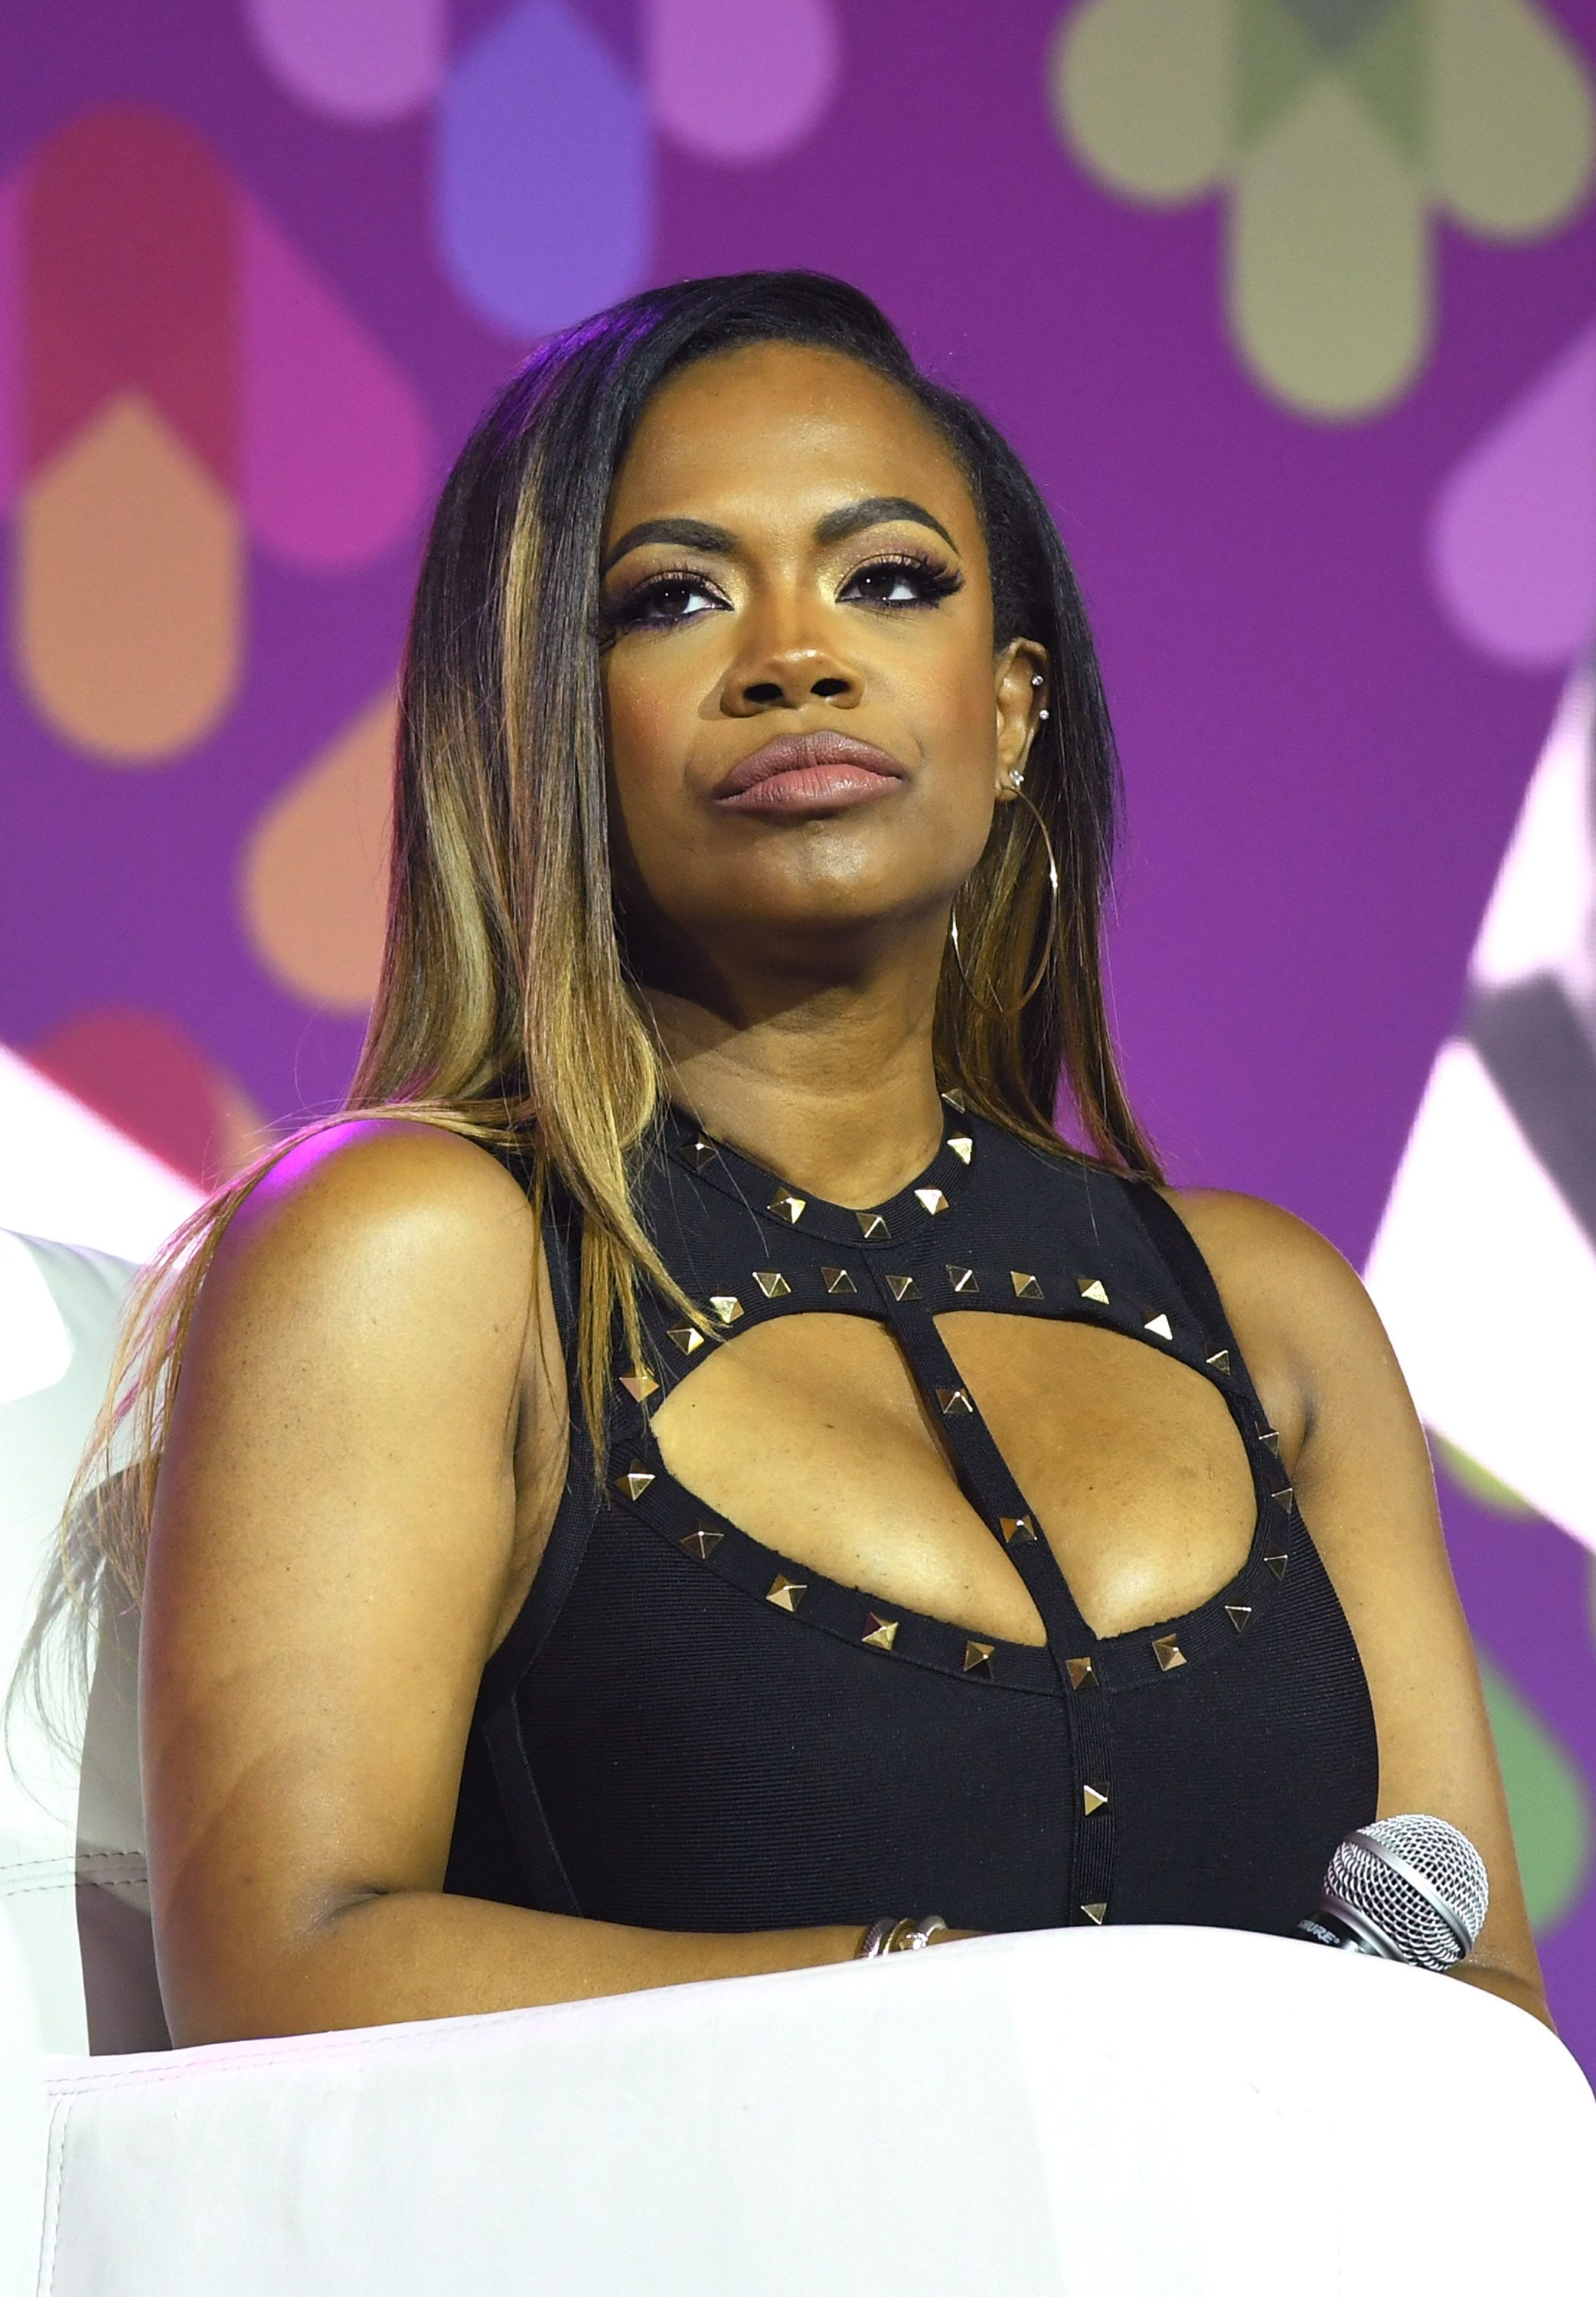 On July 2, 2017 in New Orleans, Louisiana, Kandi Burruss speaks onstage at the 2017 Essence Festival which was presented by Coca-Cola at Ernest N. Morial Convention Center.   Photo: Getty Images